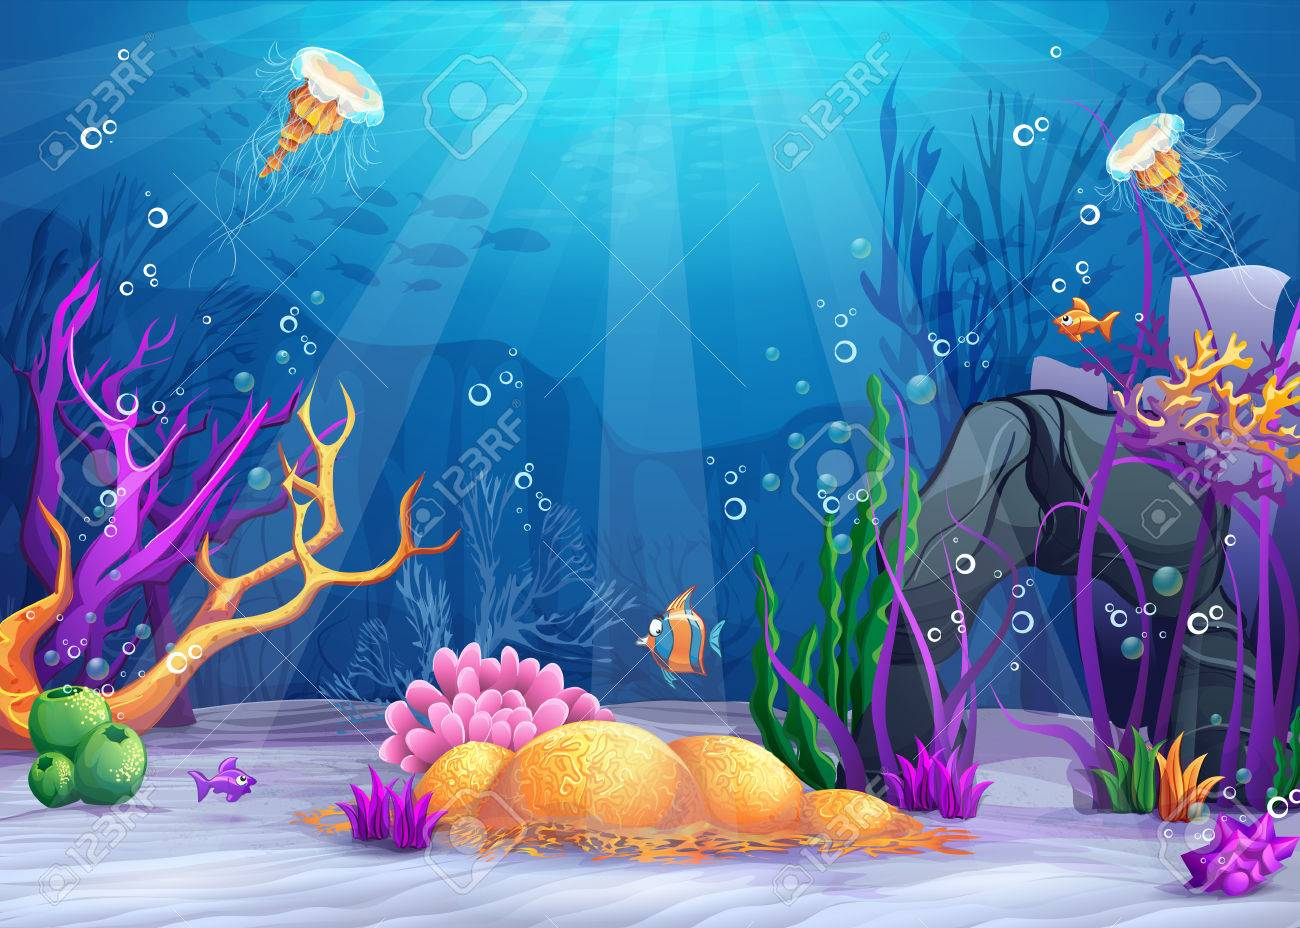 Marine Life Landscape - the ocean and underwater world with different inhabitants. For print, create videos or web graphic design, user interface, card, poster. - 60008737